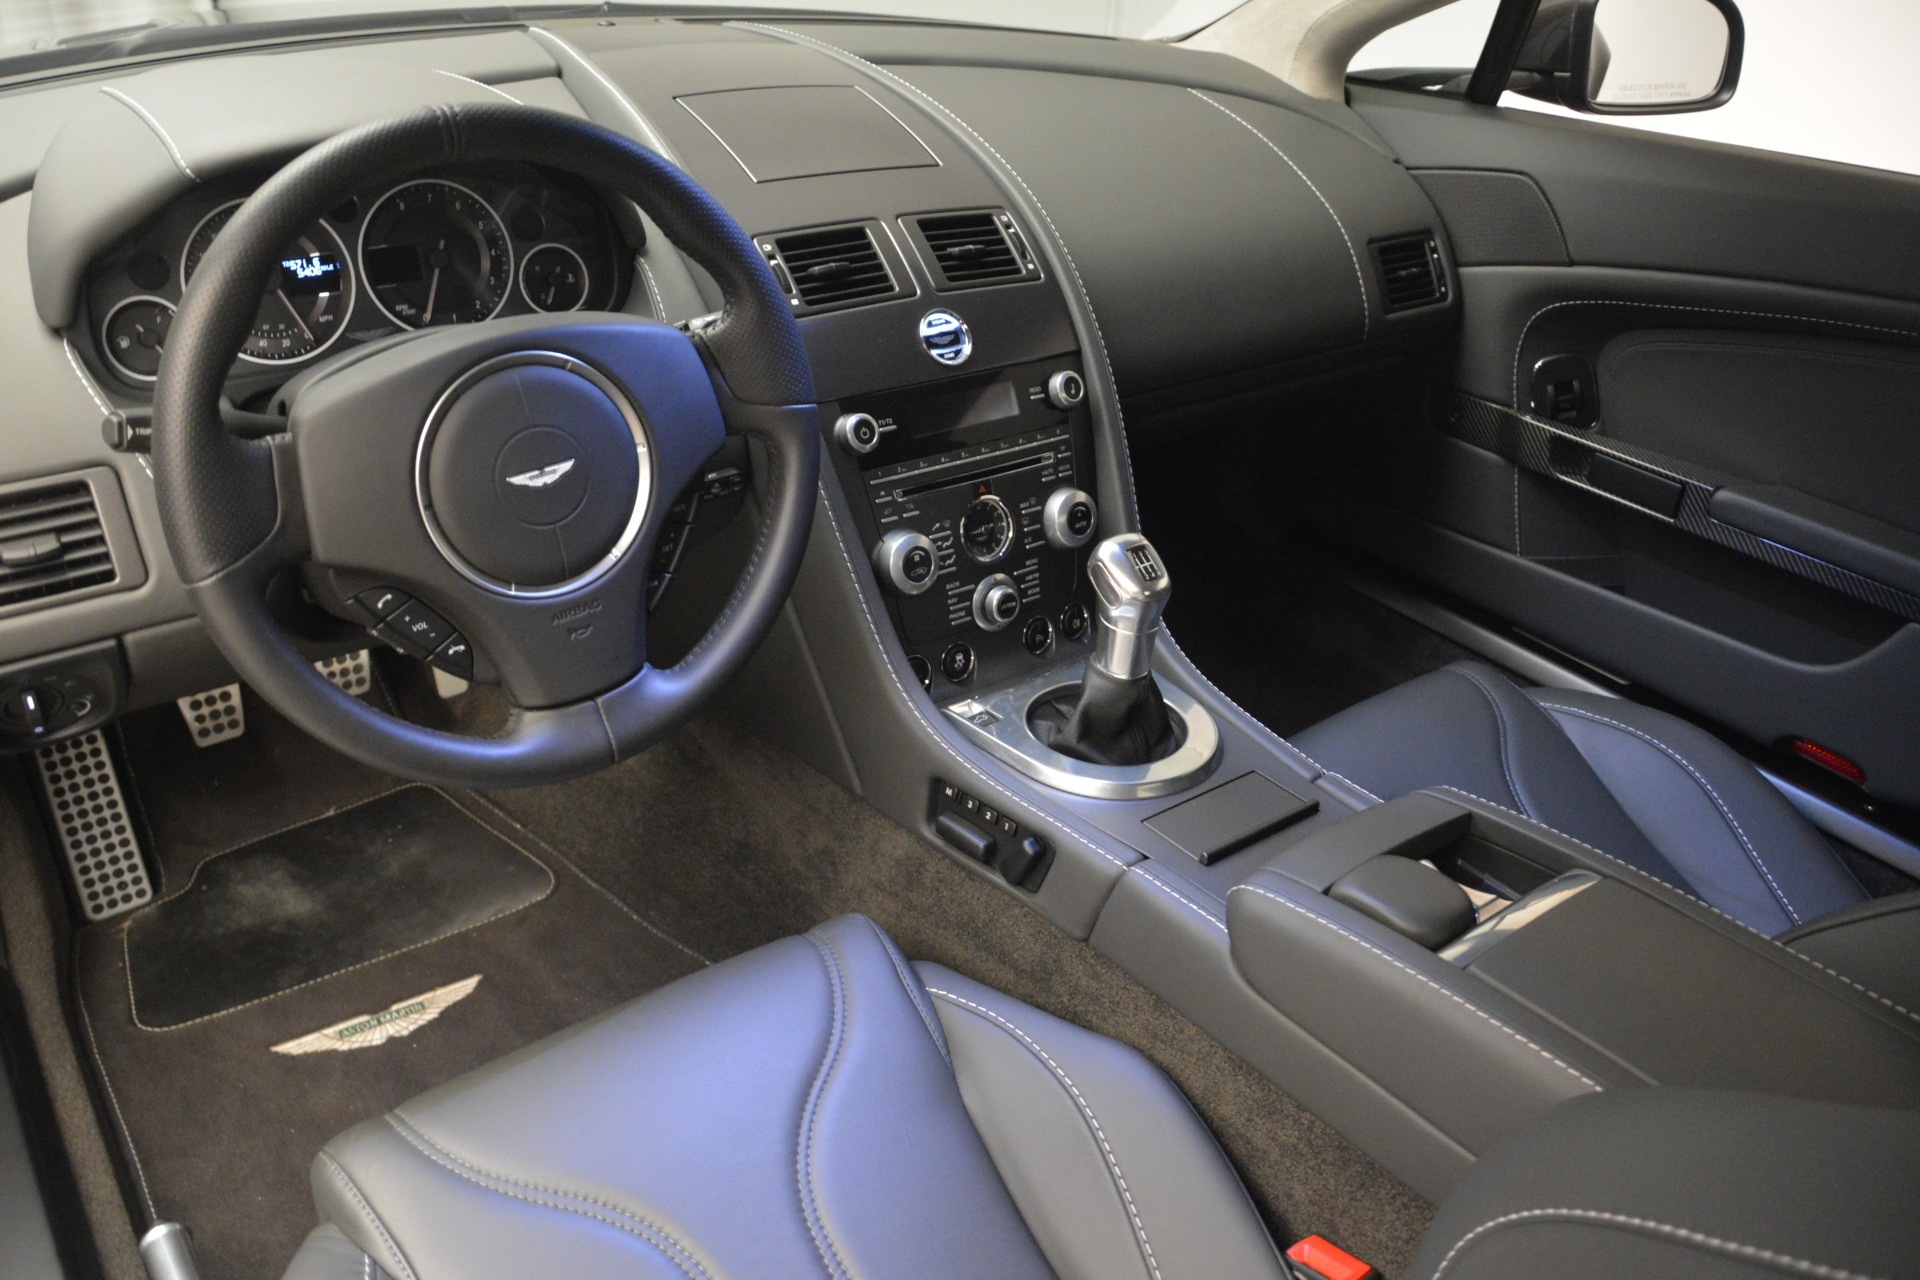 Used 2012 Aston Martin V12 Vantage Coupe For Sale In Westport, CT 2544_p14